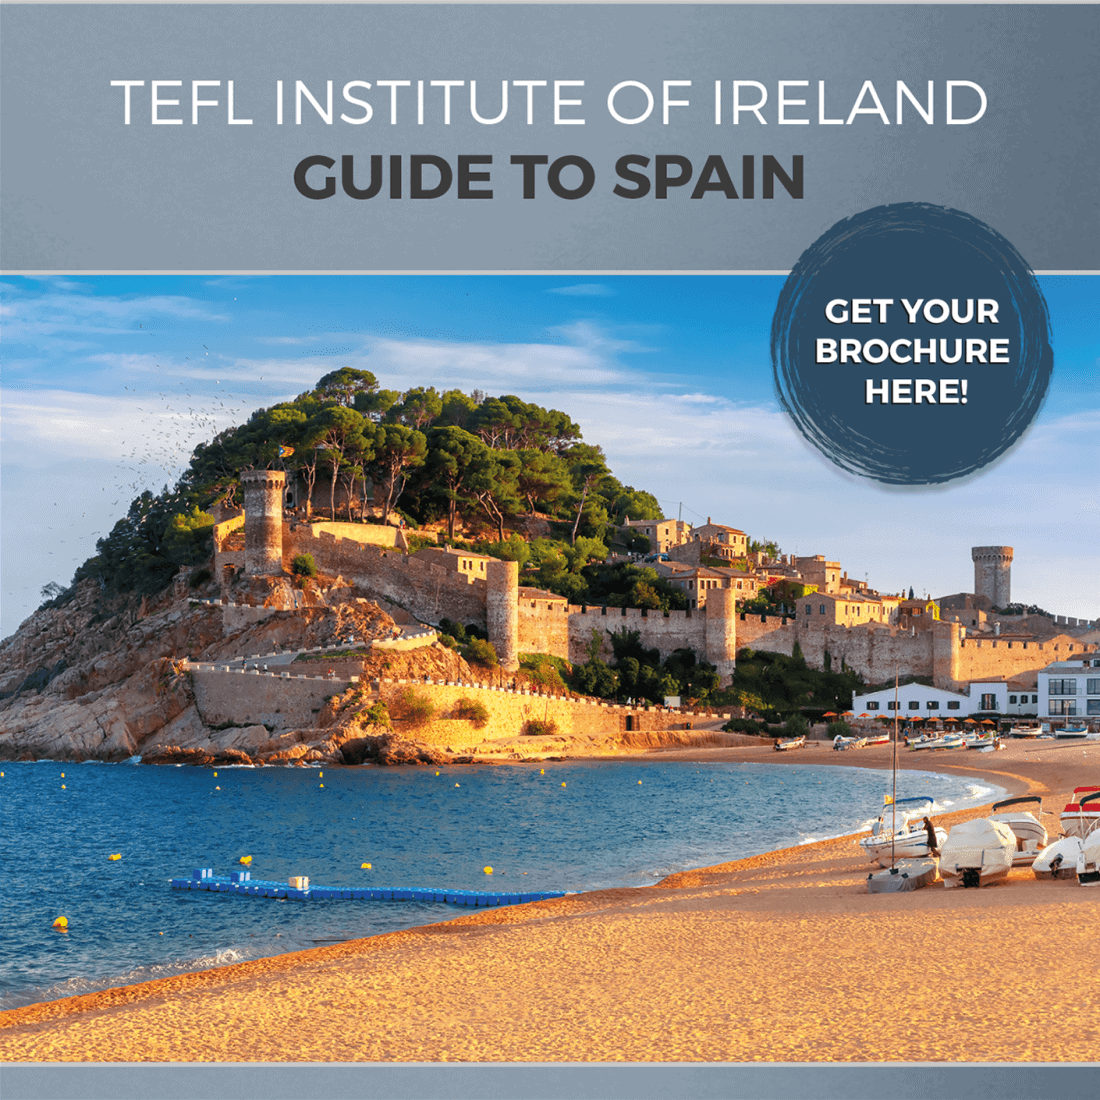 Image for Teach English in Spain for an authentic teaching and travel experience.